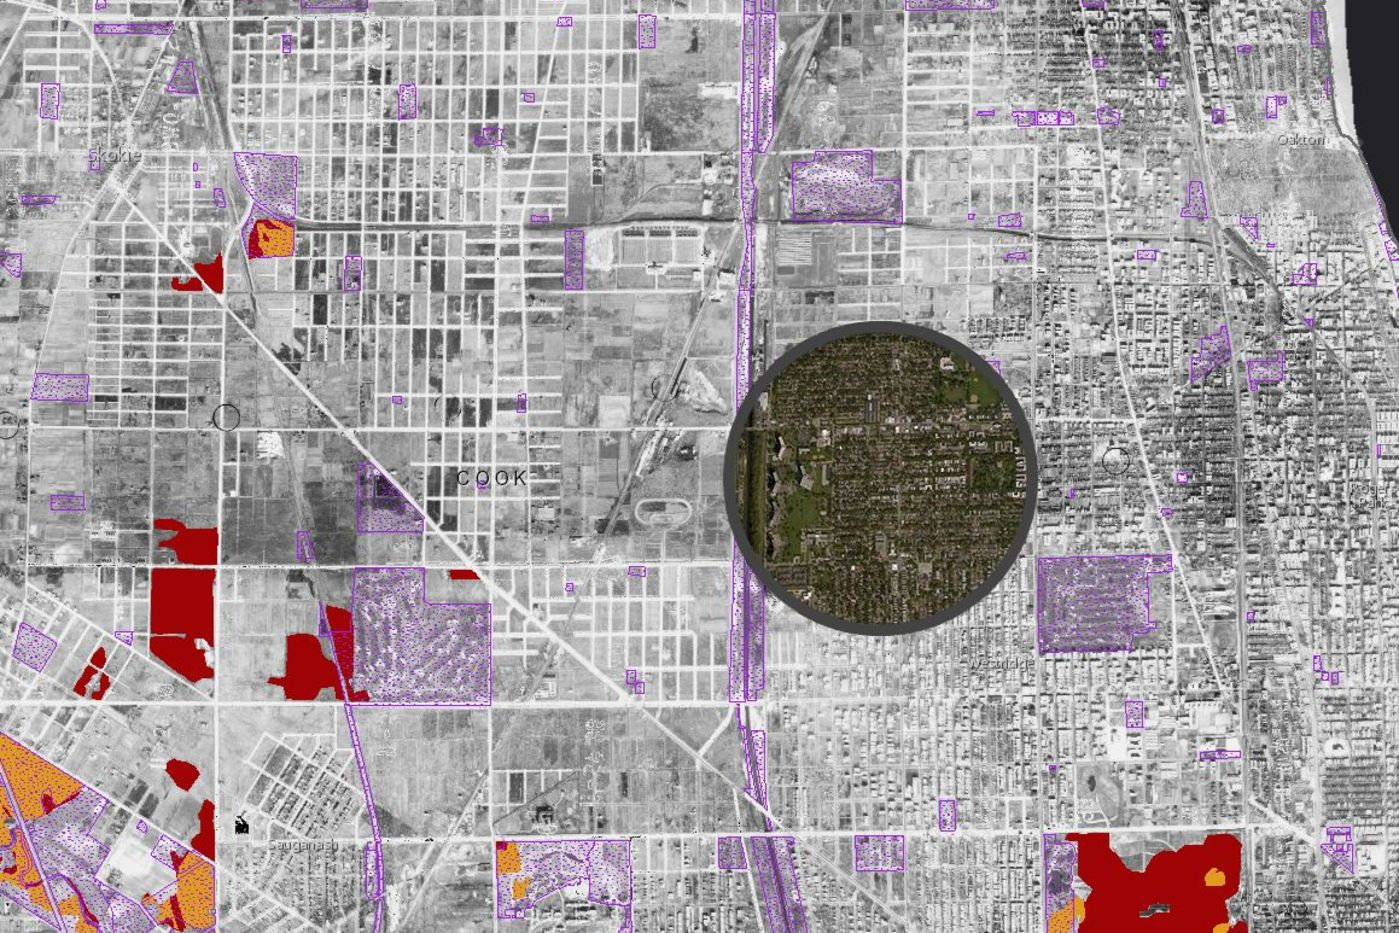 Map Showing 1939 Imagery Compared with Current Day and